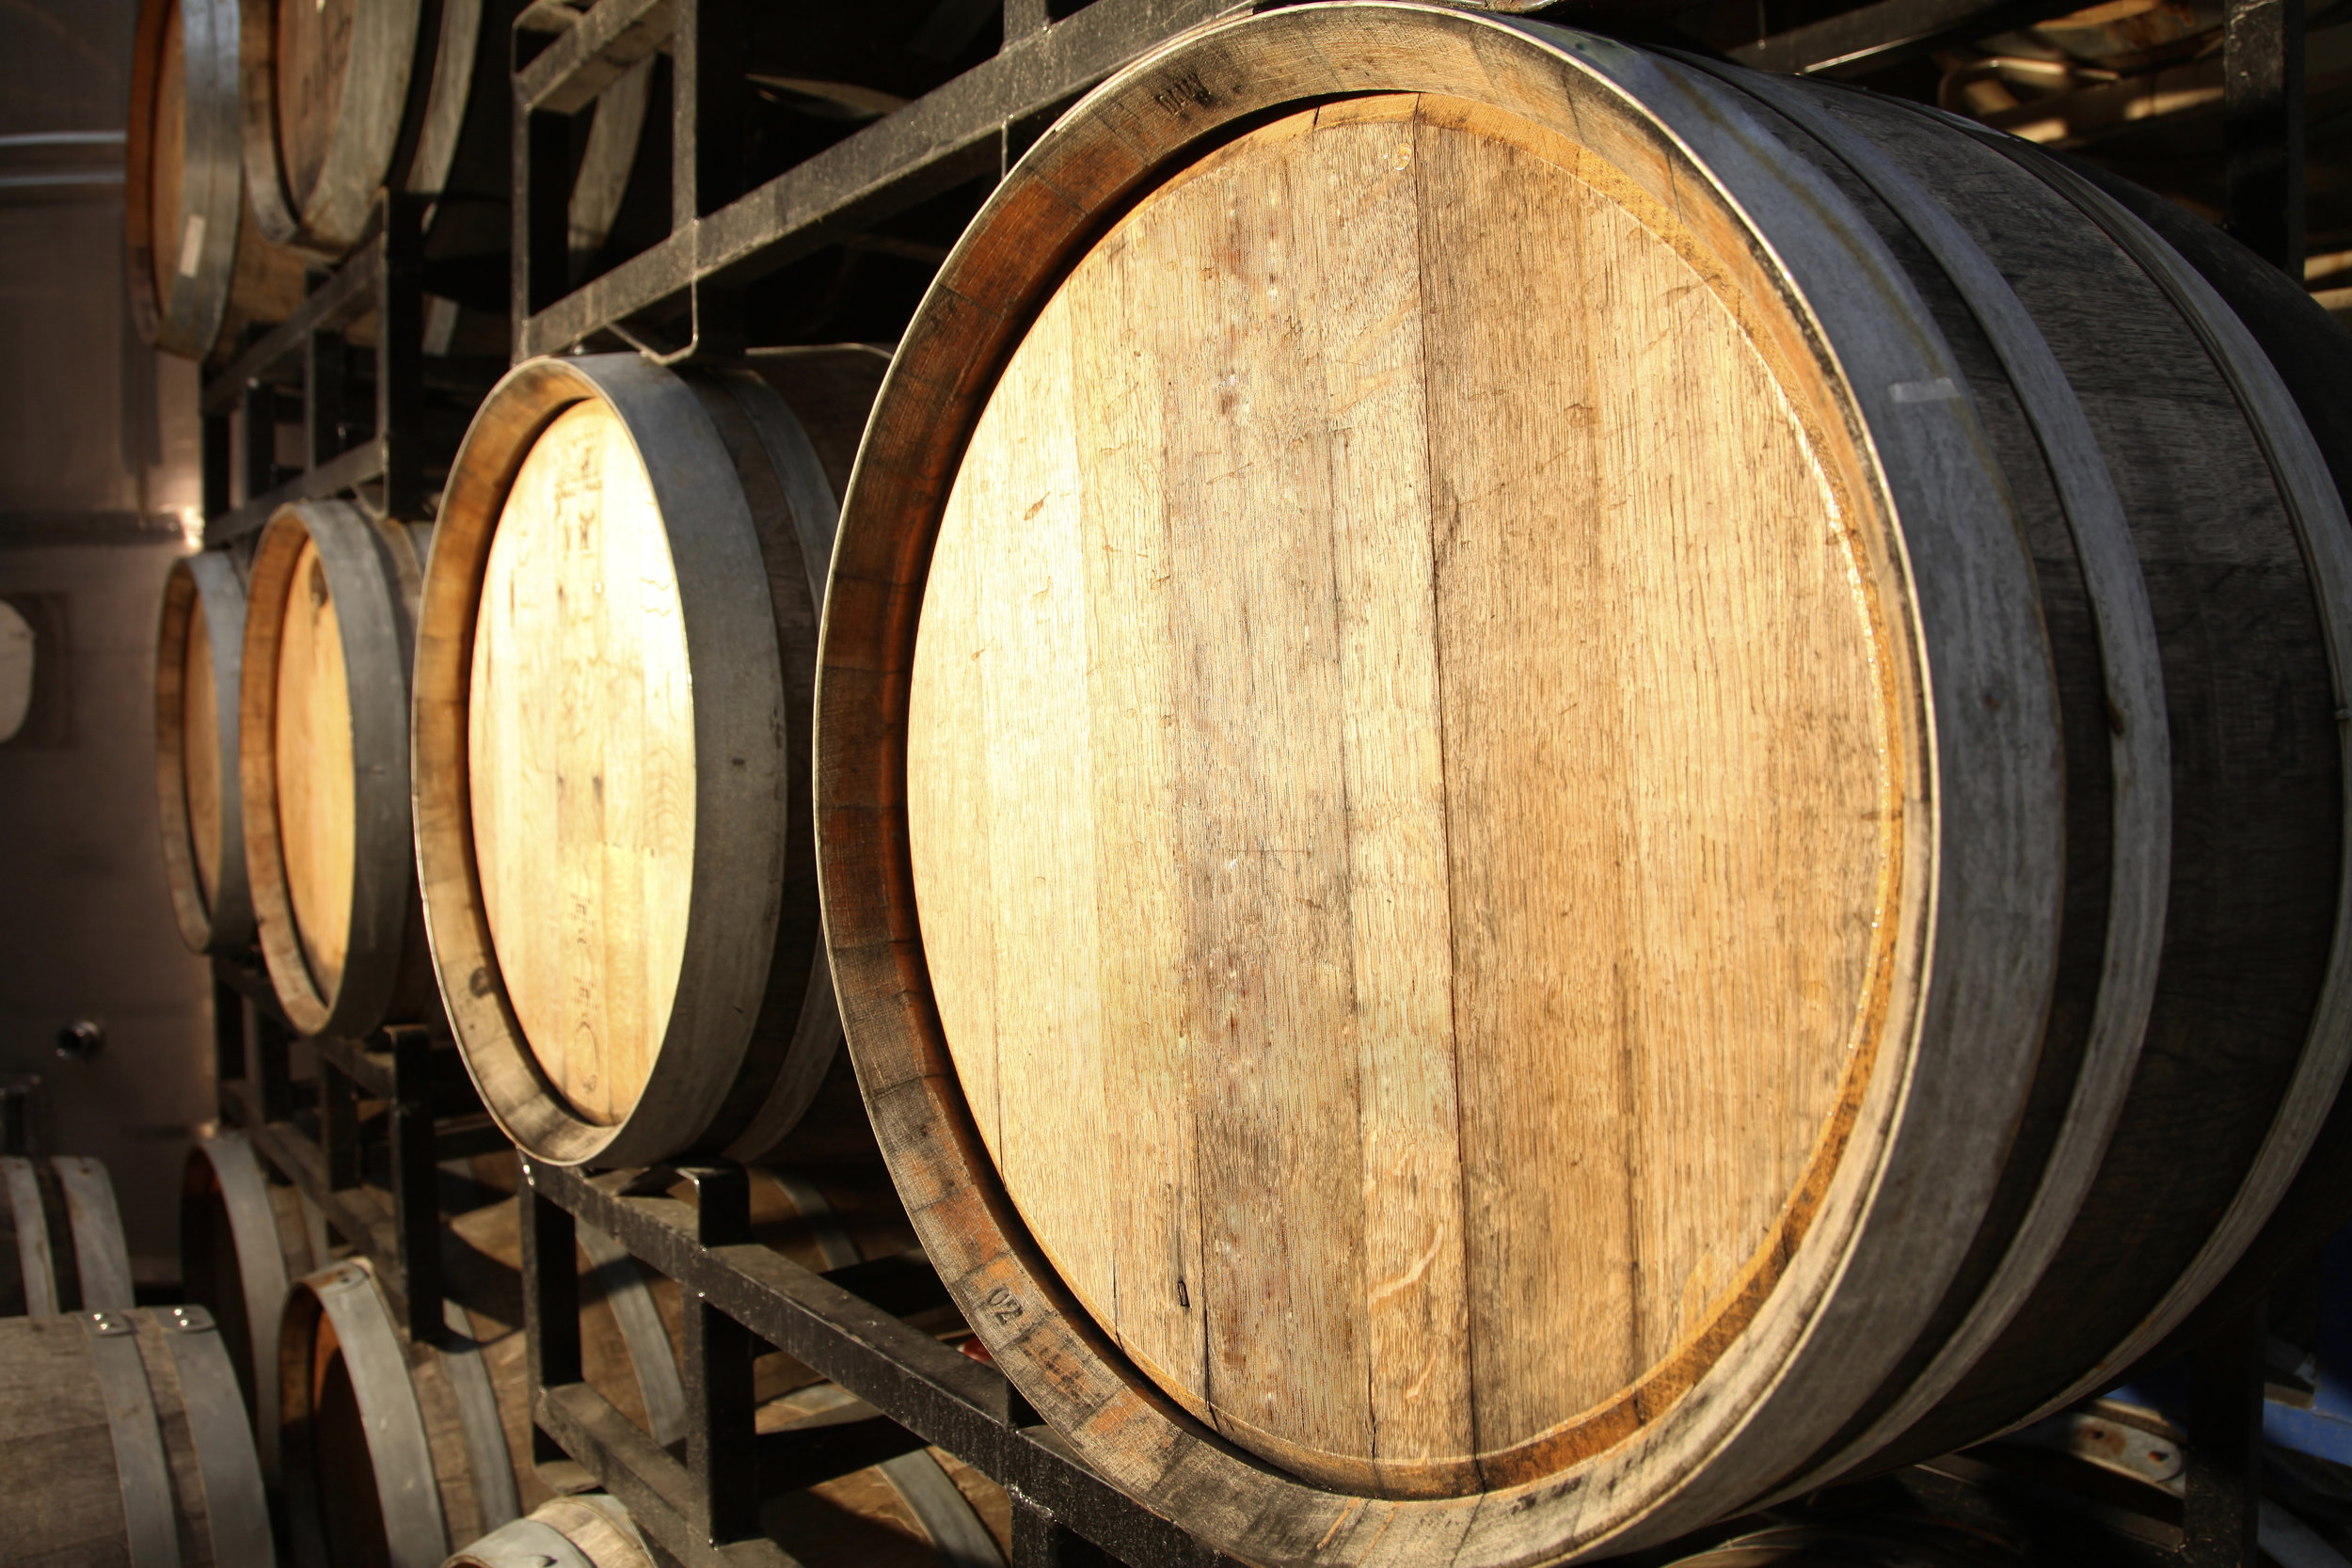 Barrel Room at Averill Creek Vineyard